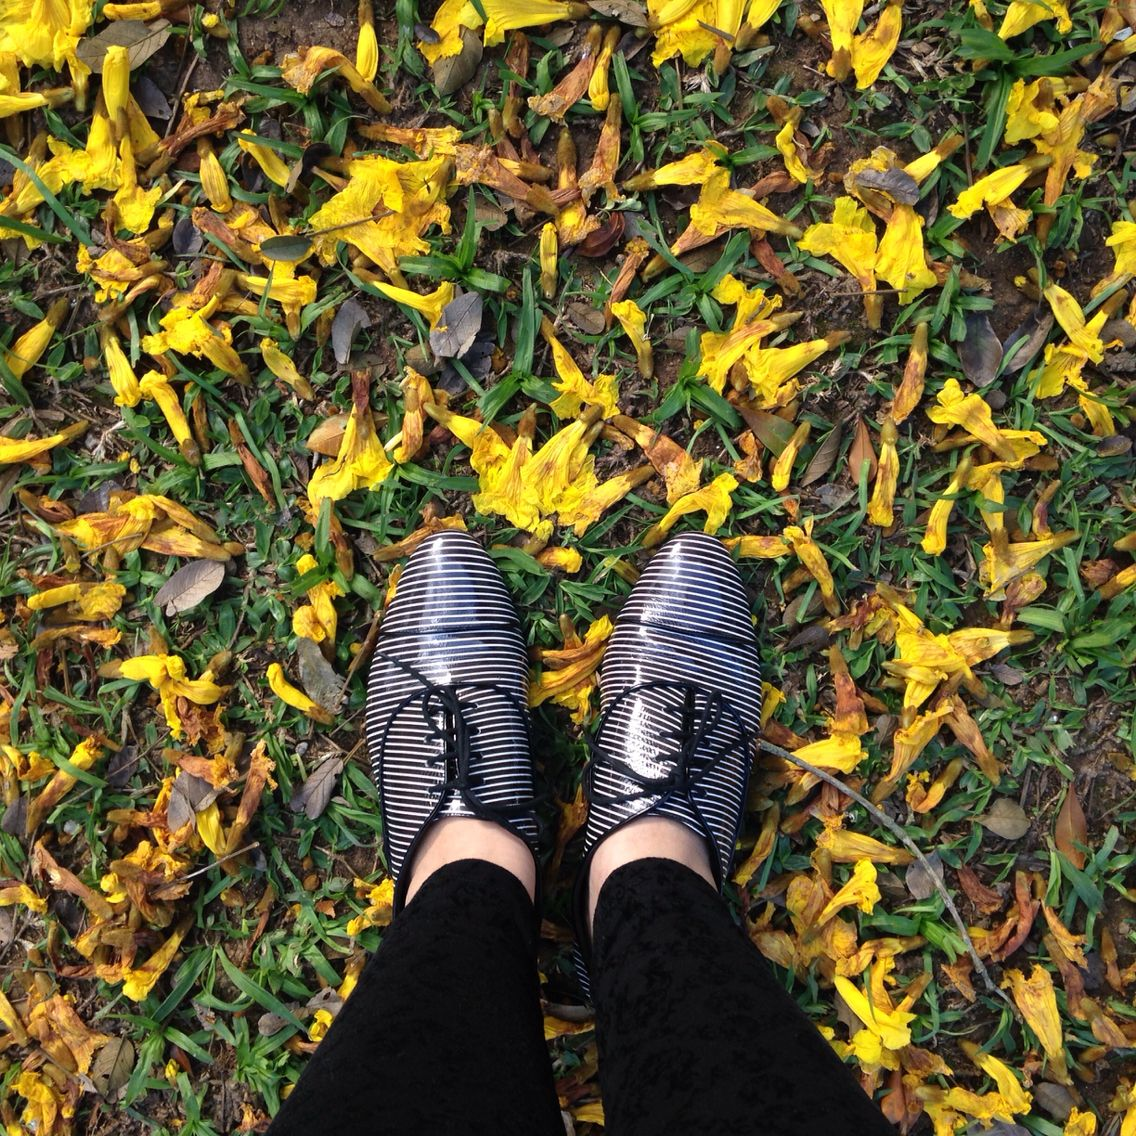 Oxford Shoes + Flowers!